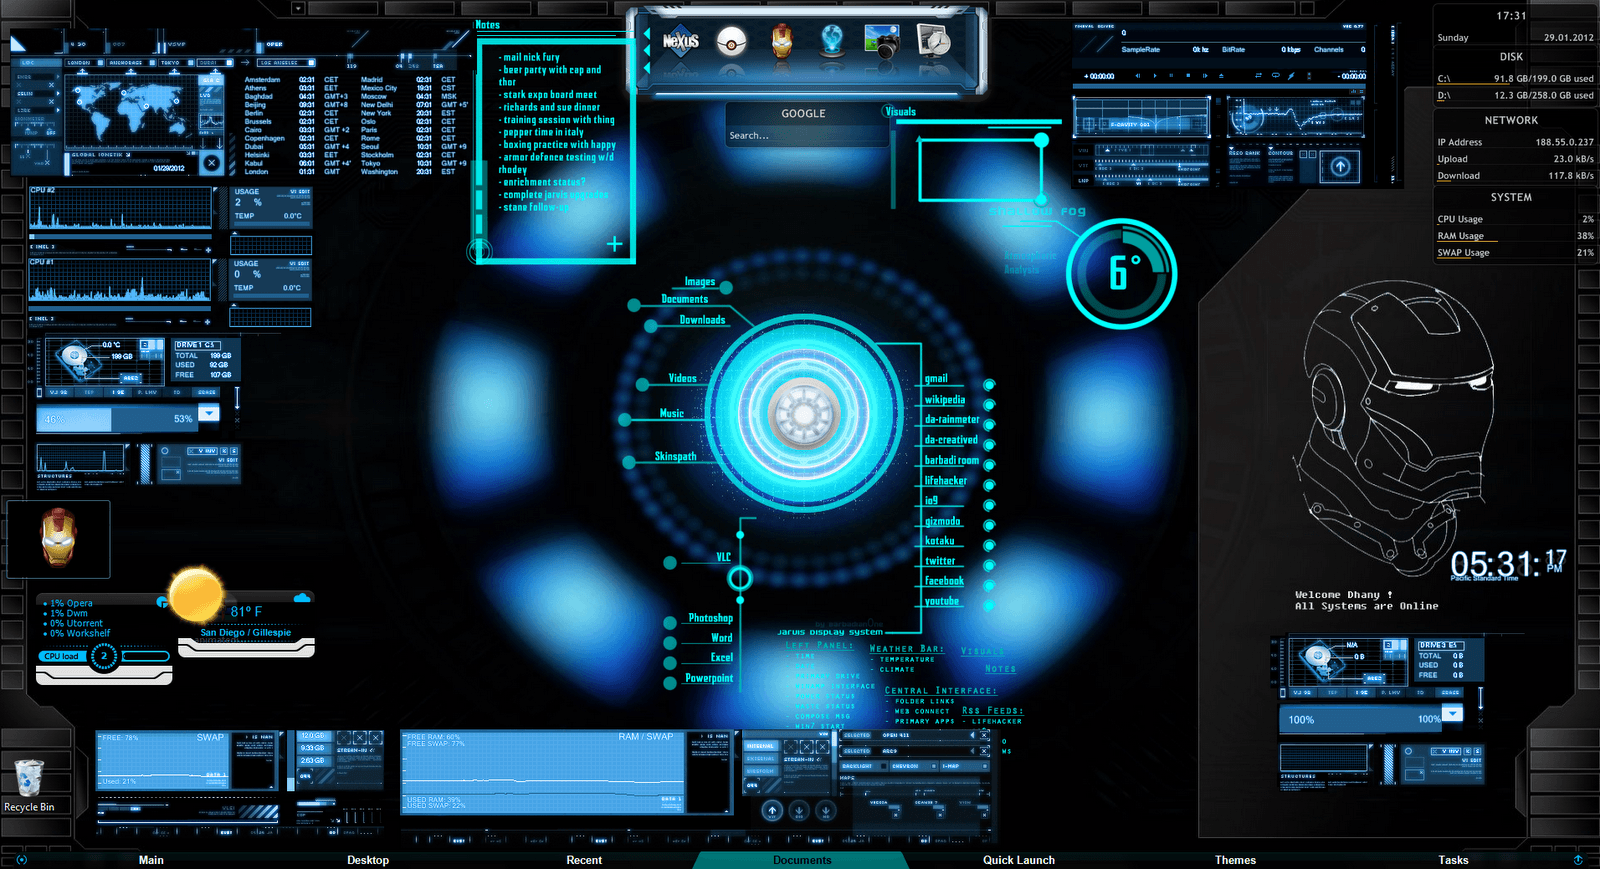 Jarvis Iron Man Wallpaper Hd: J.A.R.V.I.S Wallpapers